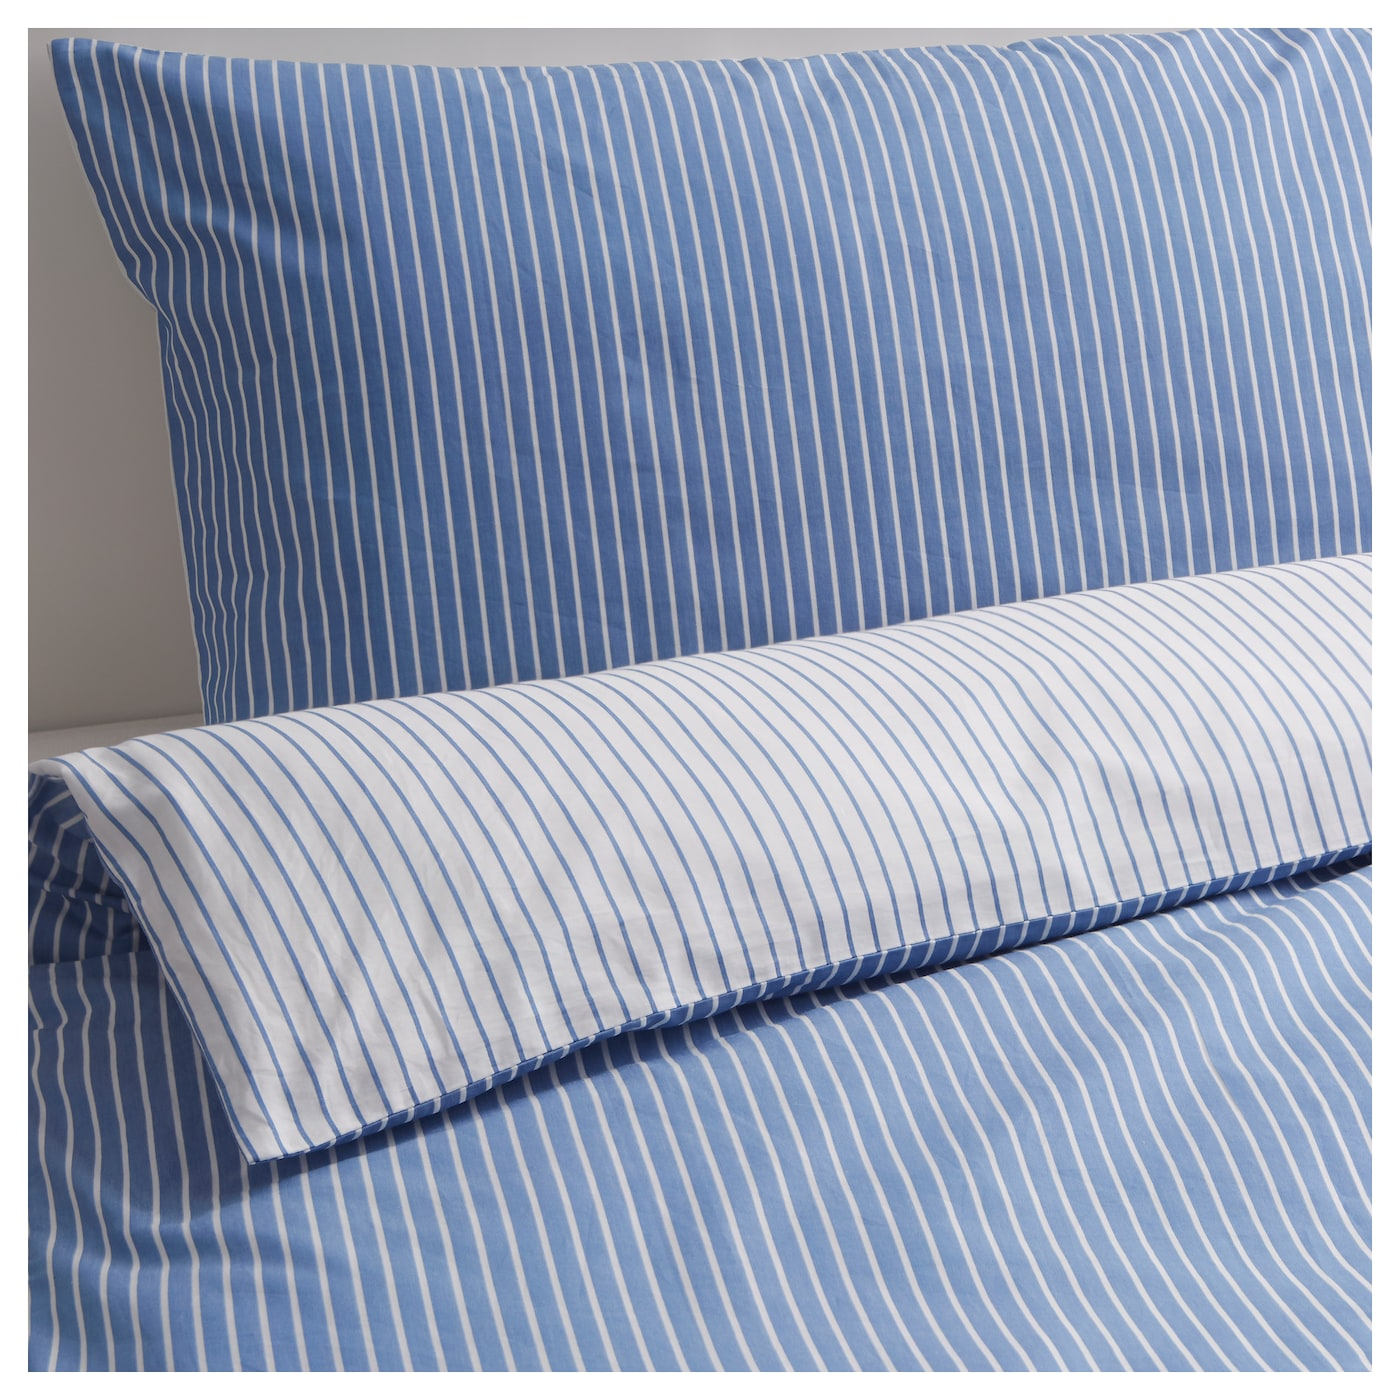 Ikea R Dnarv Quilt Cover And 4 Pillowcases The Zipper